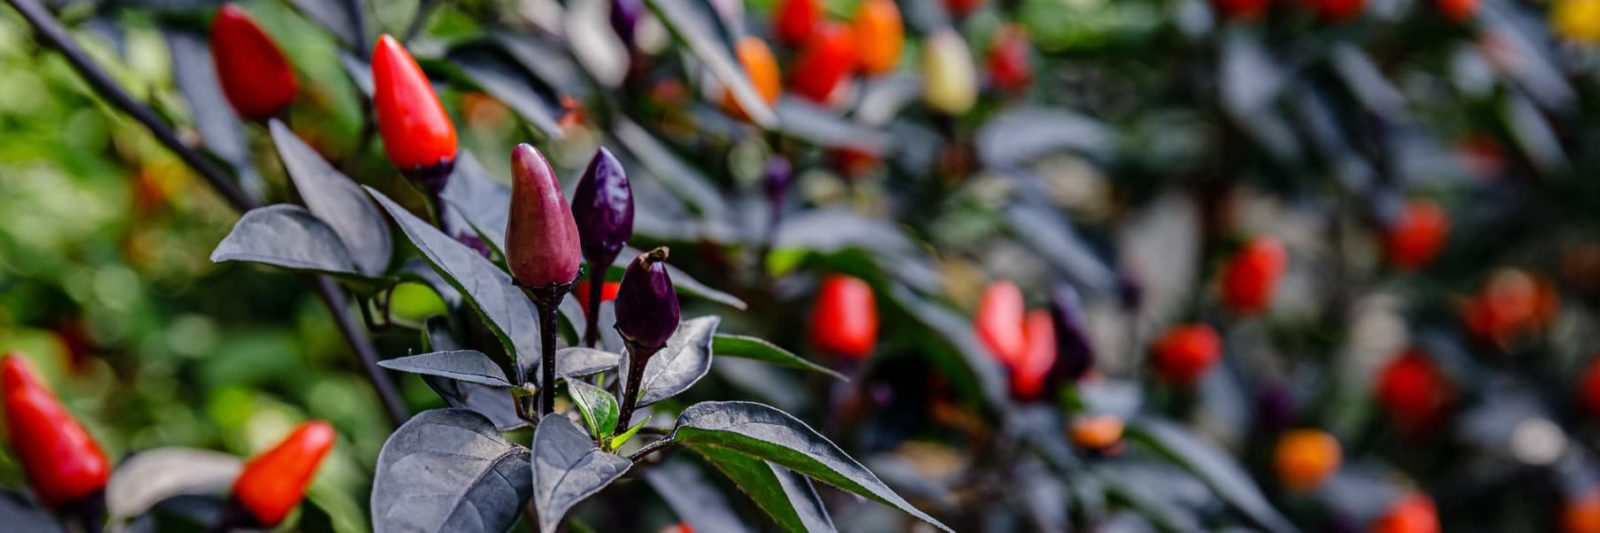 pepper plant fruiting